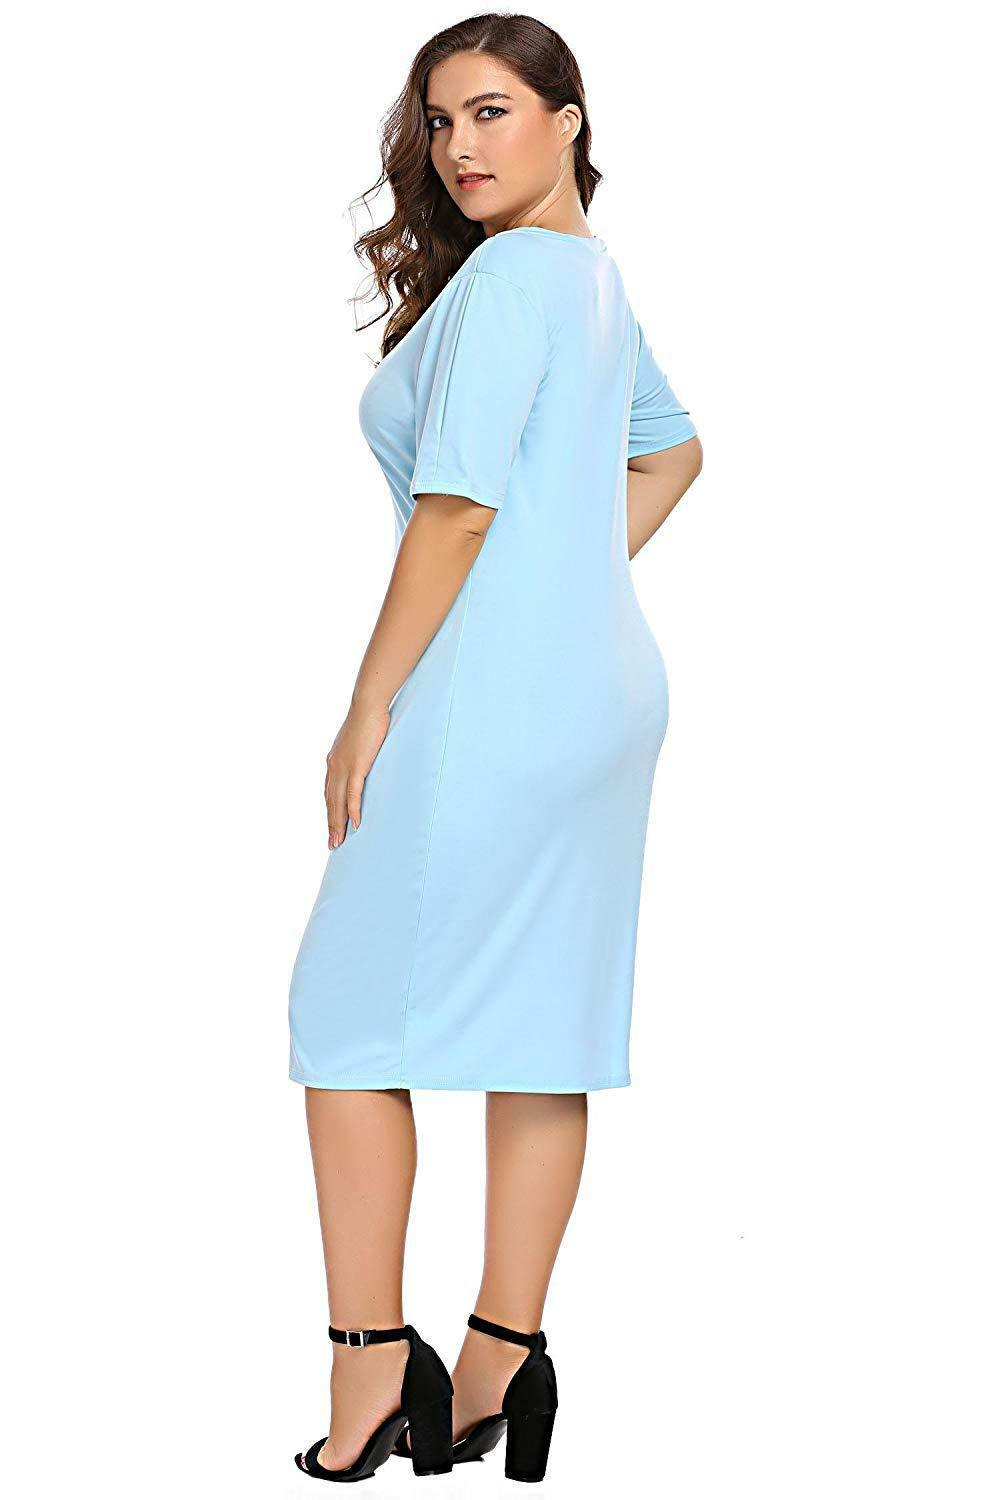 Zeagoo Women Plus Size Loose Fit Short Sleeve O-Neck Casual Midi Dress image 4